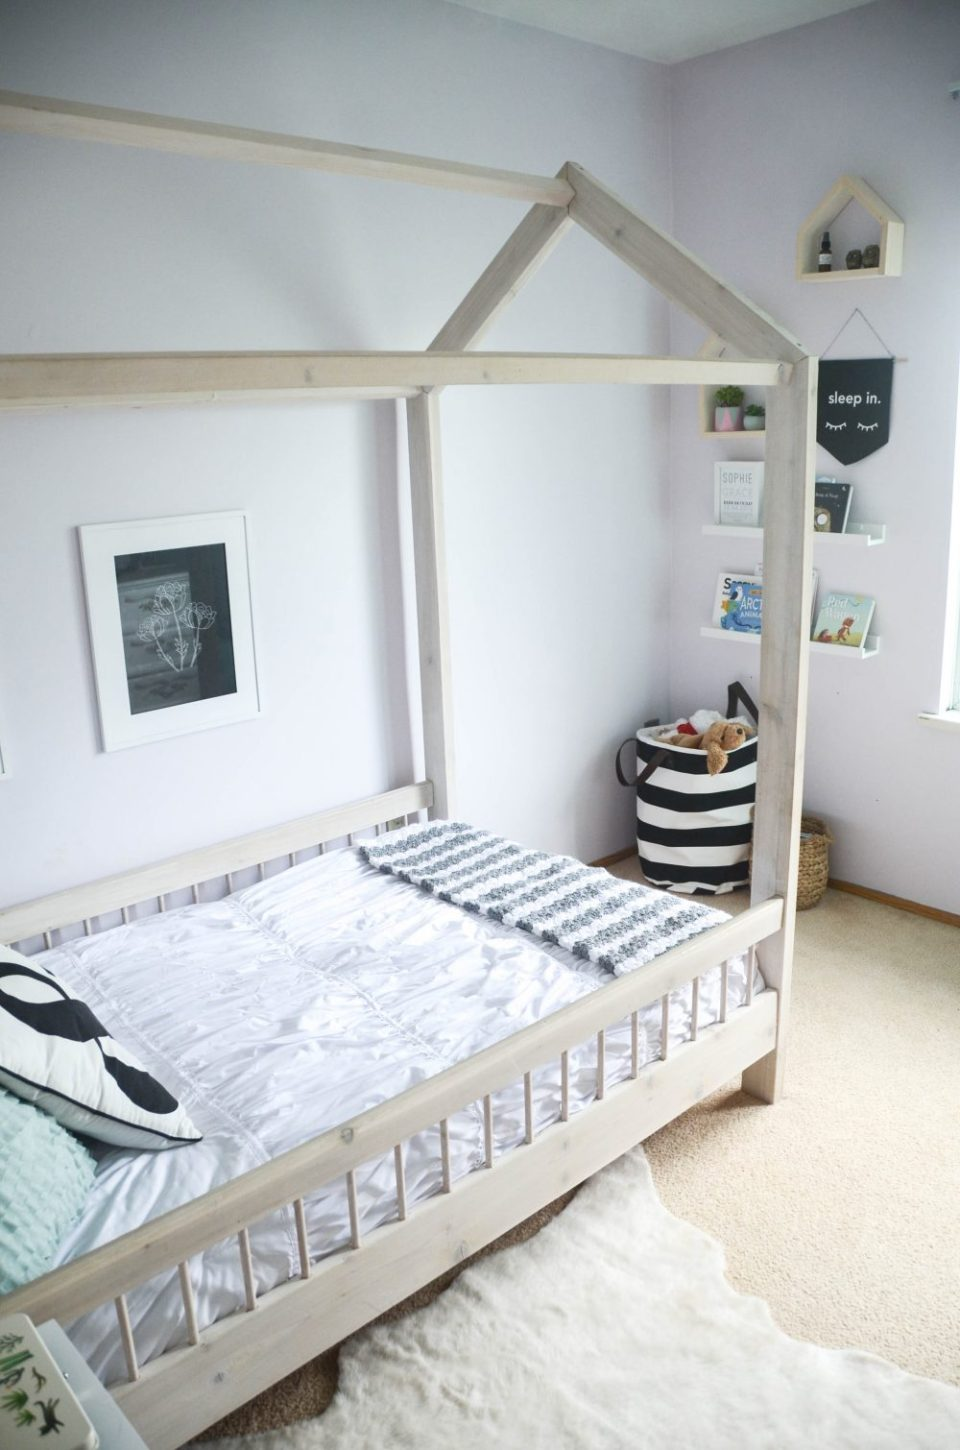 House Bed & Black and White Storage Tote in Geo Floral Themed Big Girl Bedroom